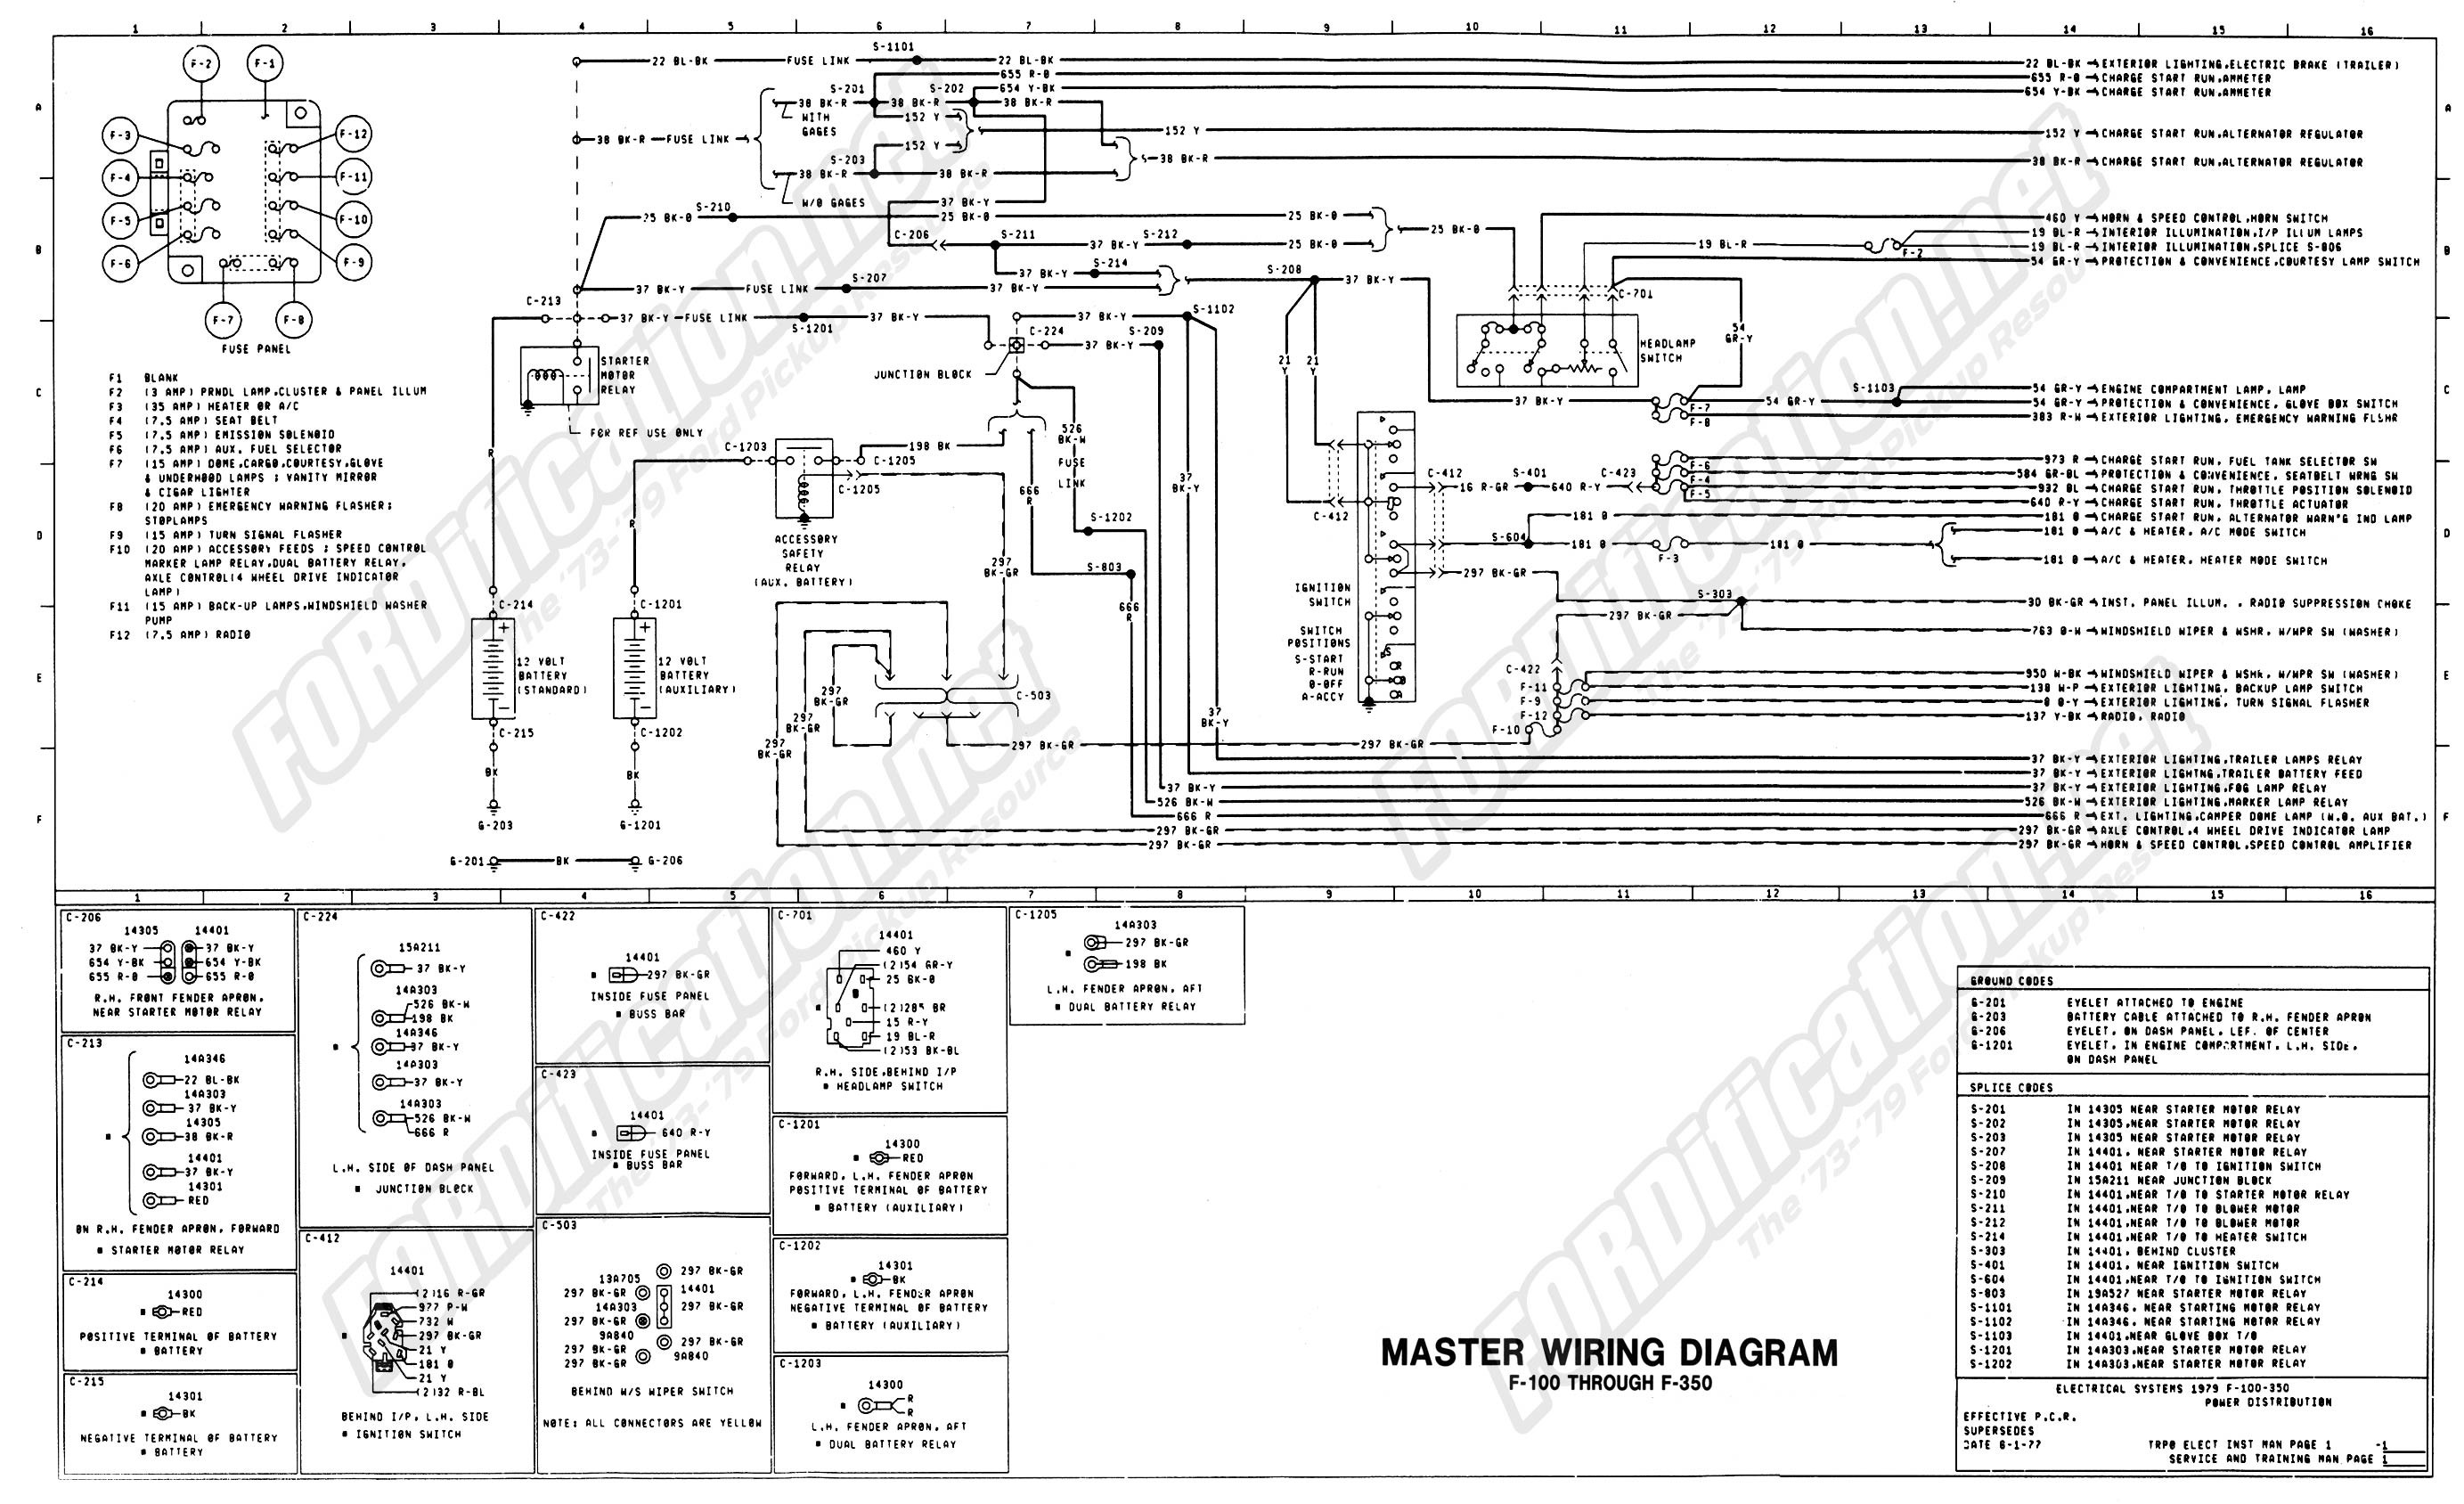 2008 ford Escape Engine Diagram 79 F150 solenoid Wiring Diagram ford Truck Enthusiasts forums Of 2008 ford Escape Engine Diagram